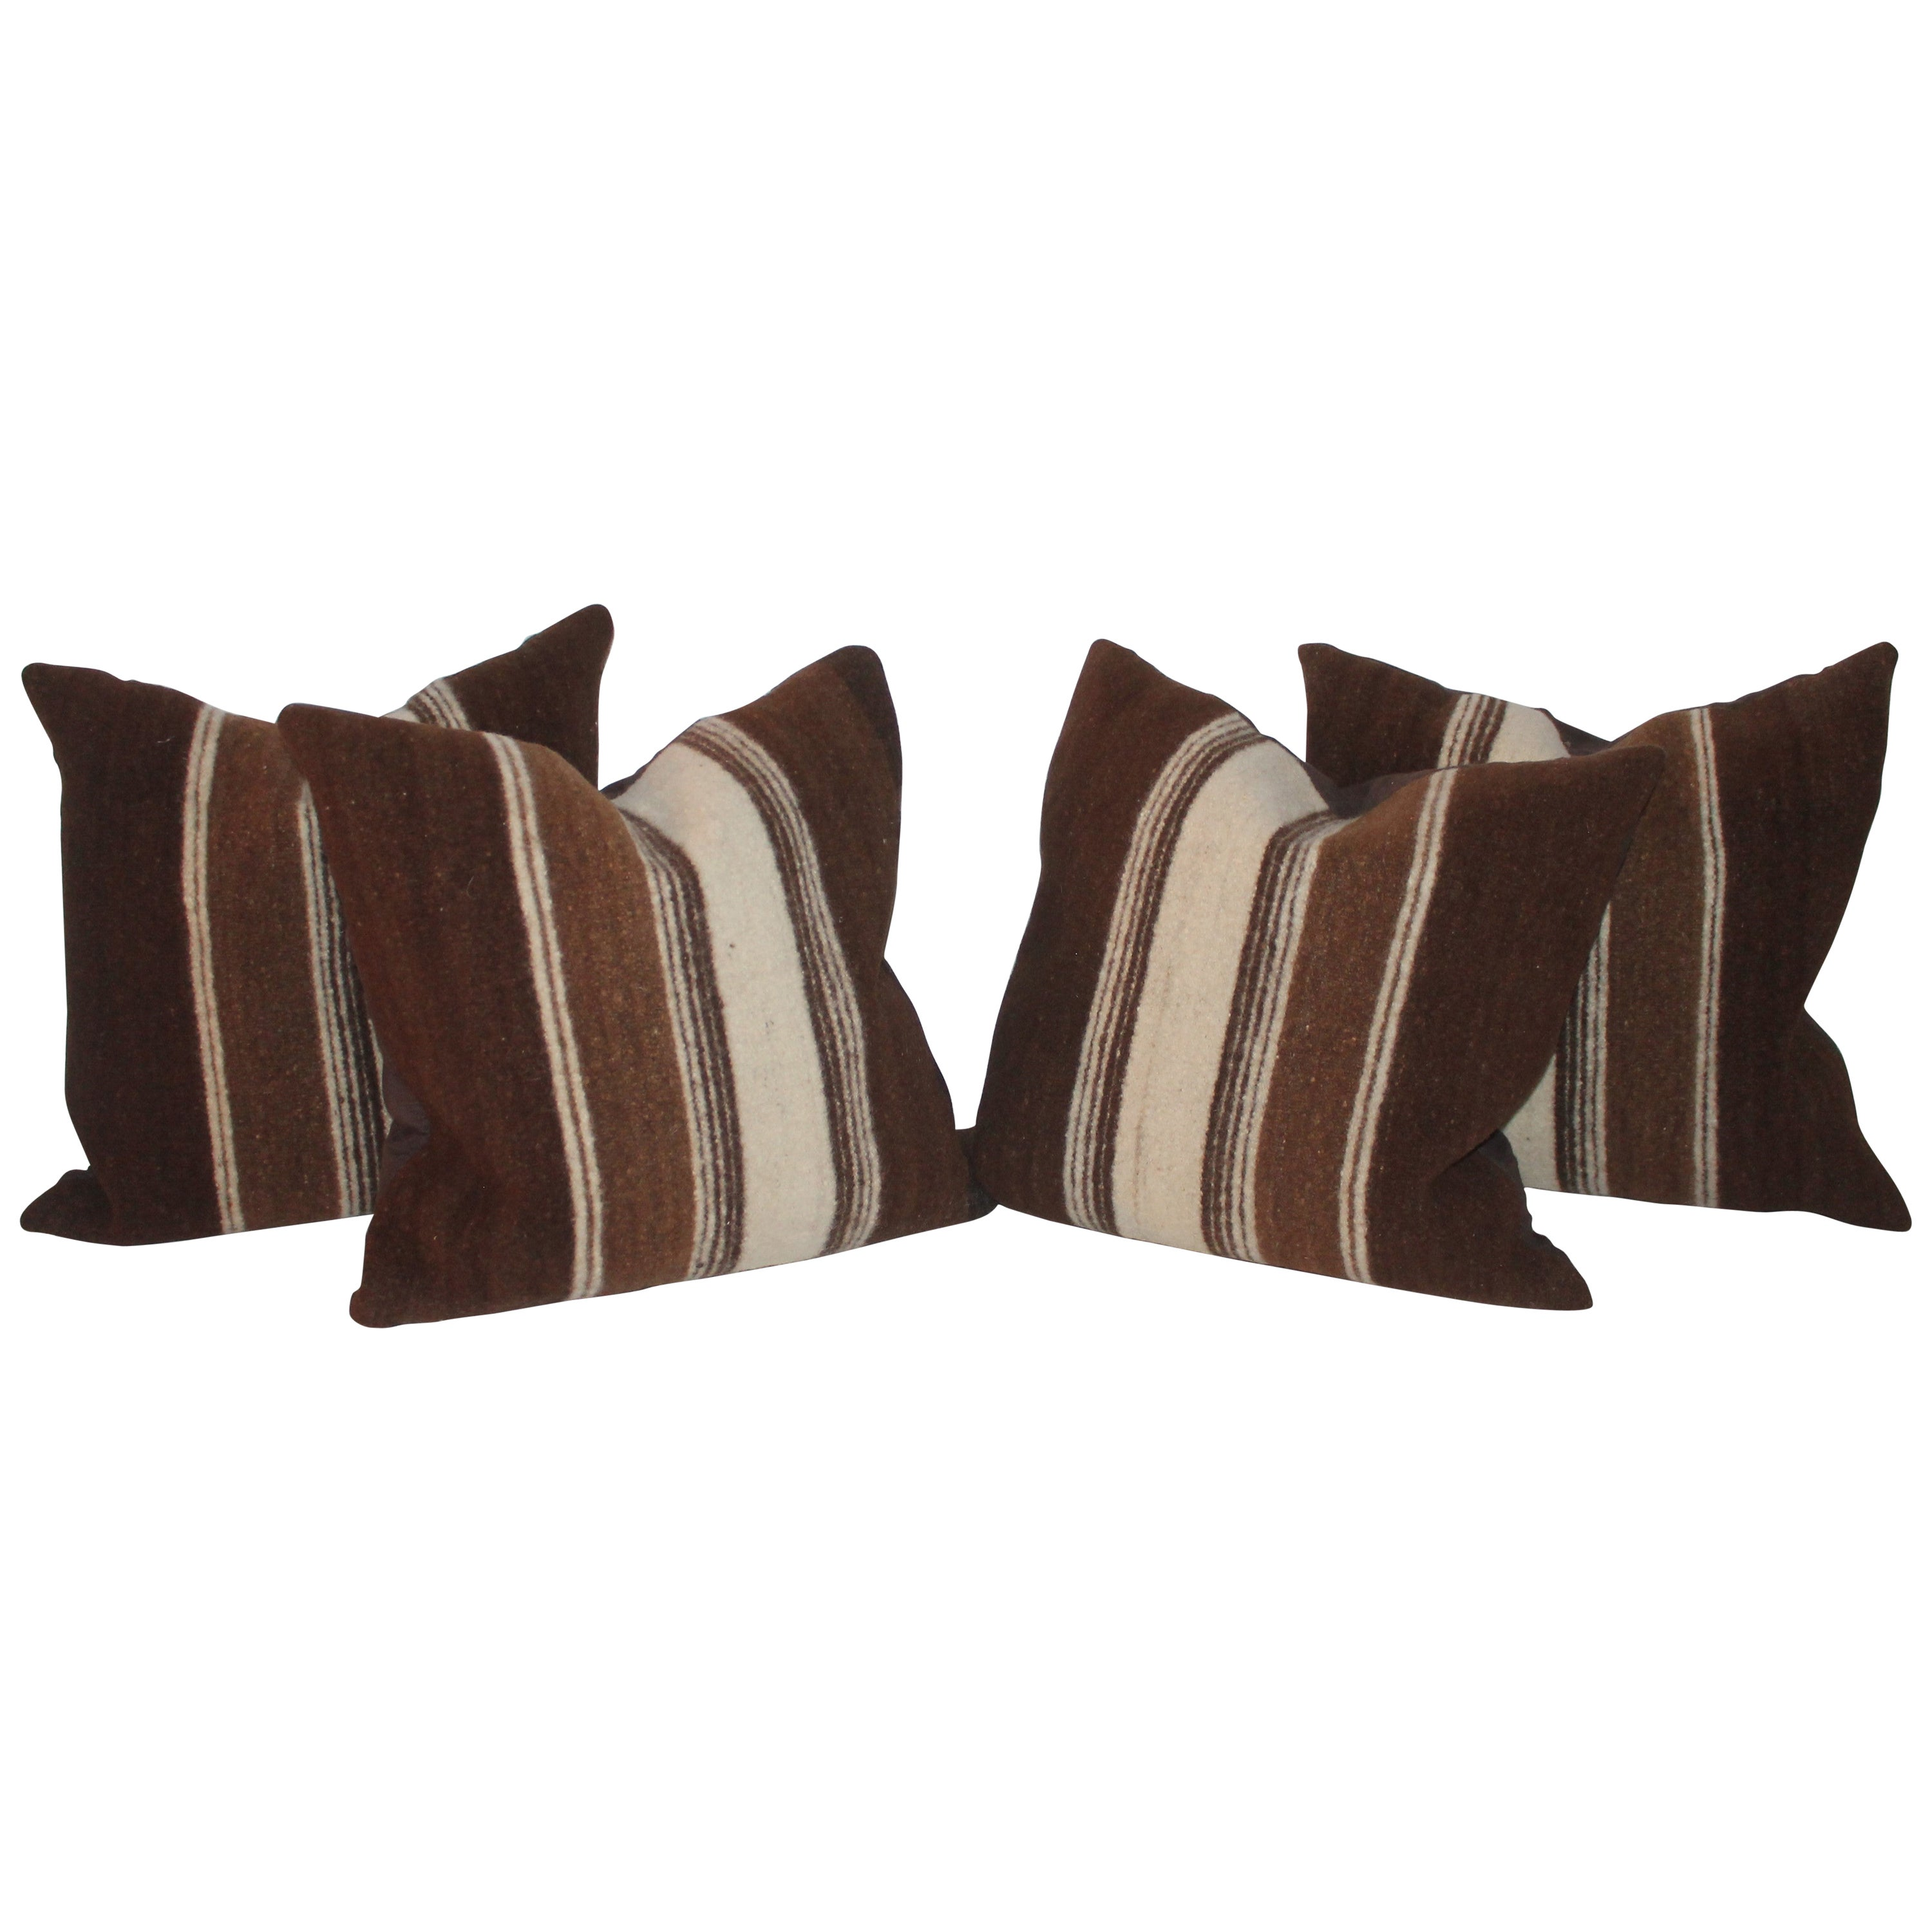 Saddle Blanket Weaving Pillows / Collection of Four